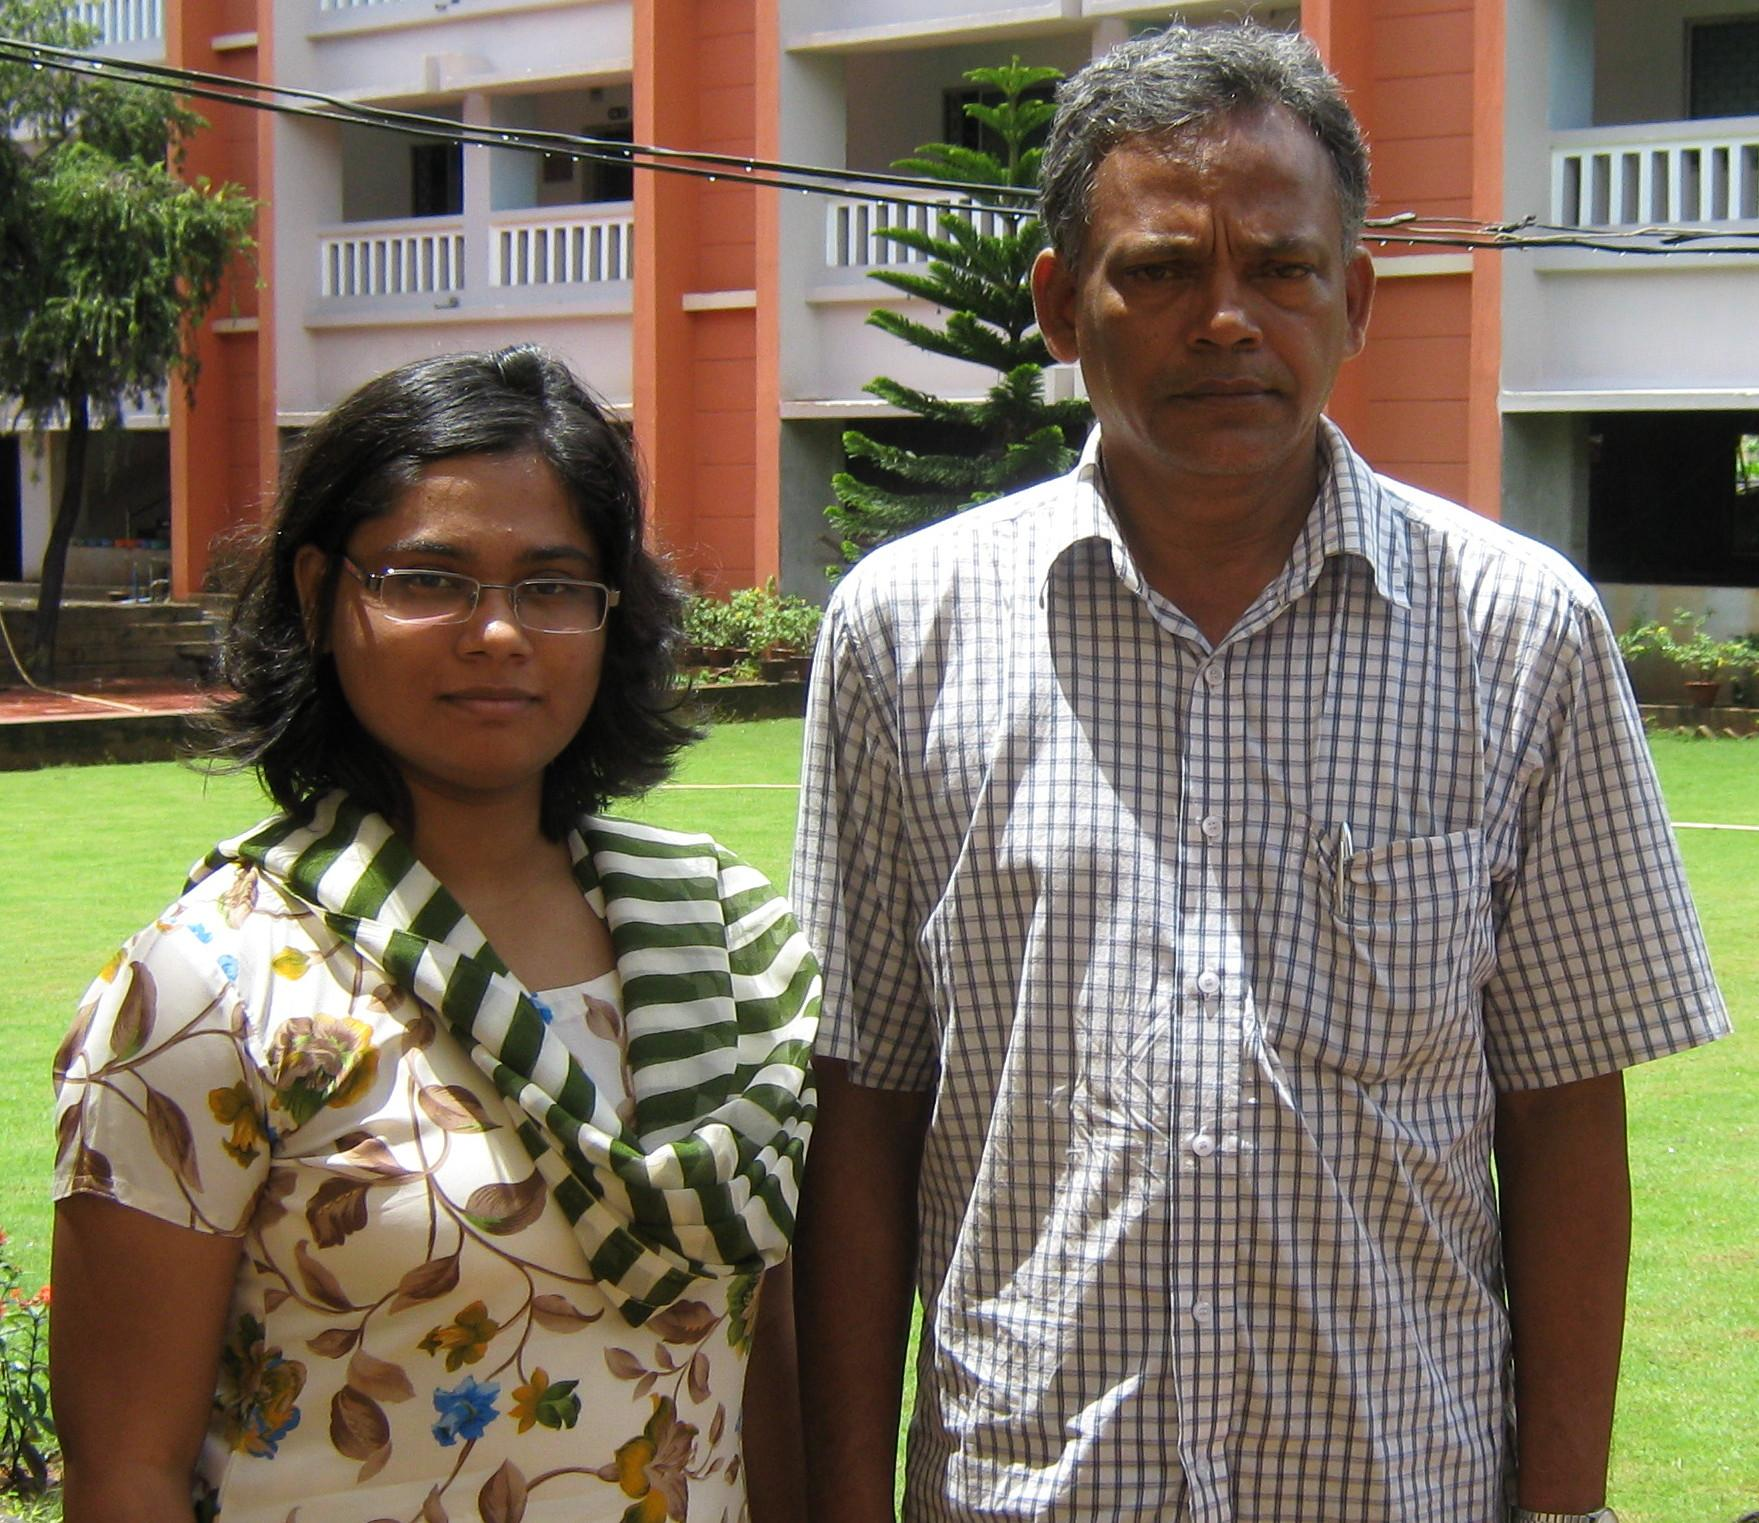 Orissa chess international Kiran Manisha Mohanty with her father Kishore Mohanty in Bhubaneswar on September 10, 2008.